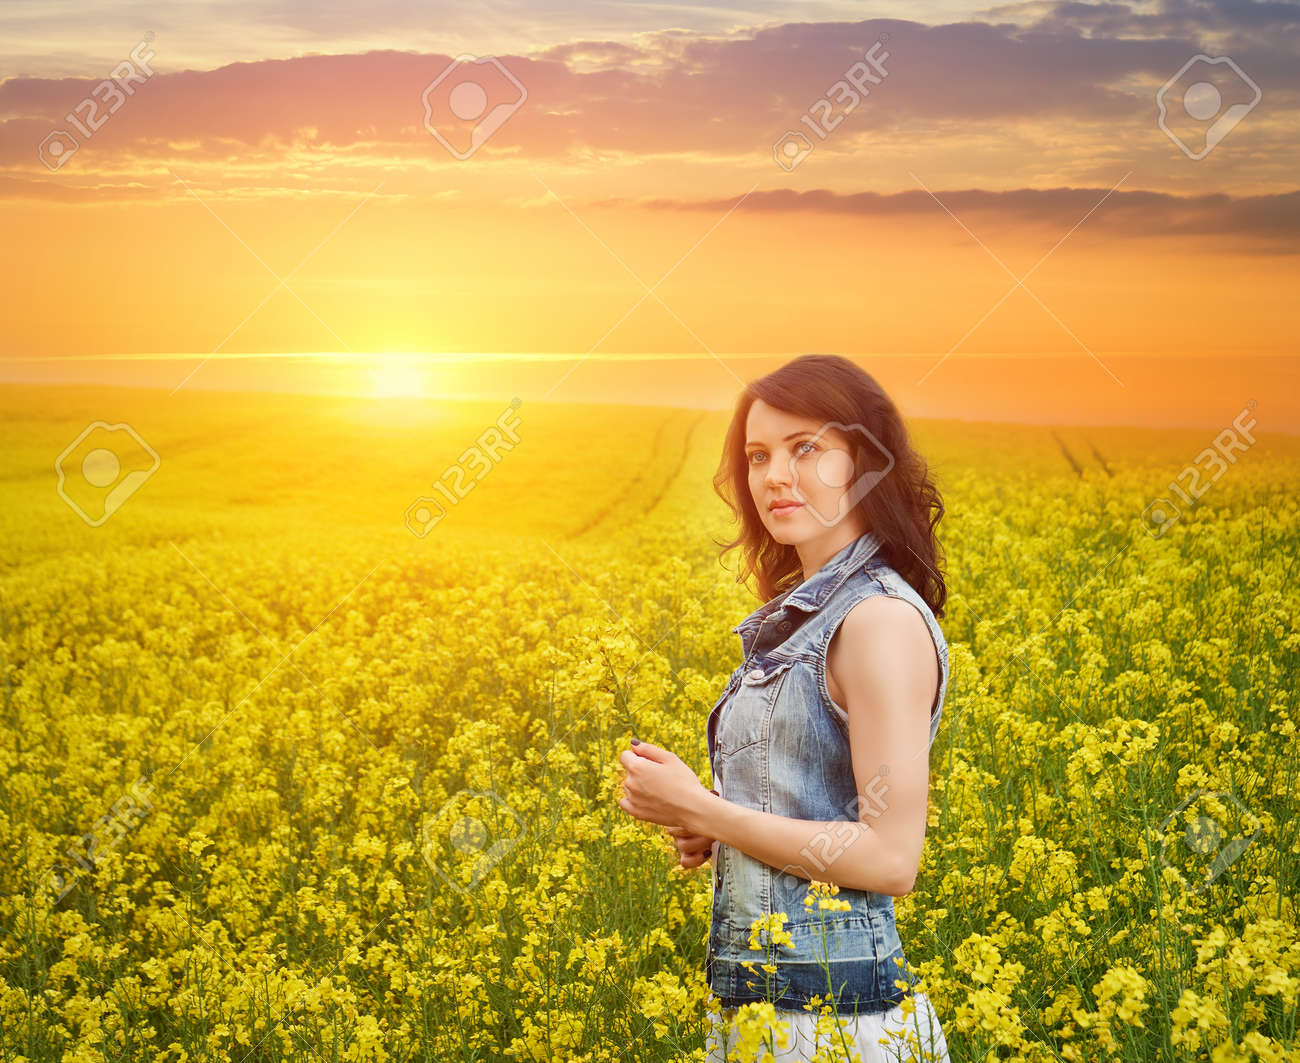 Woman In Field With Yellow Flowers At Beautiful Sunset Fotos